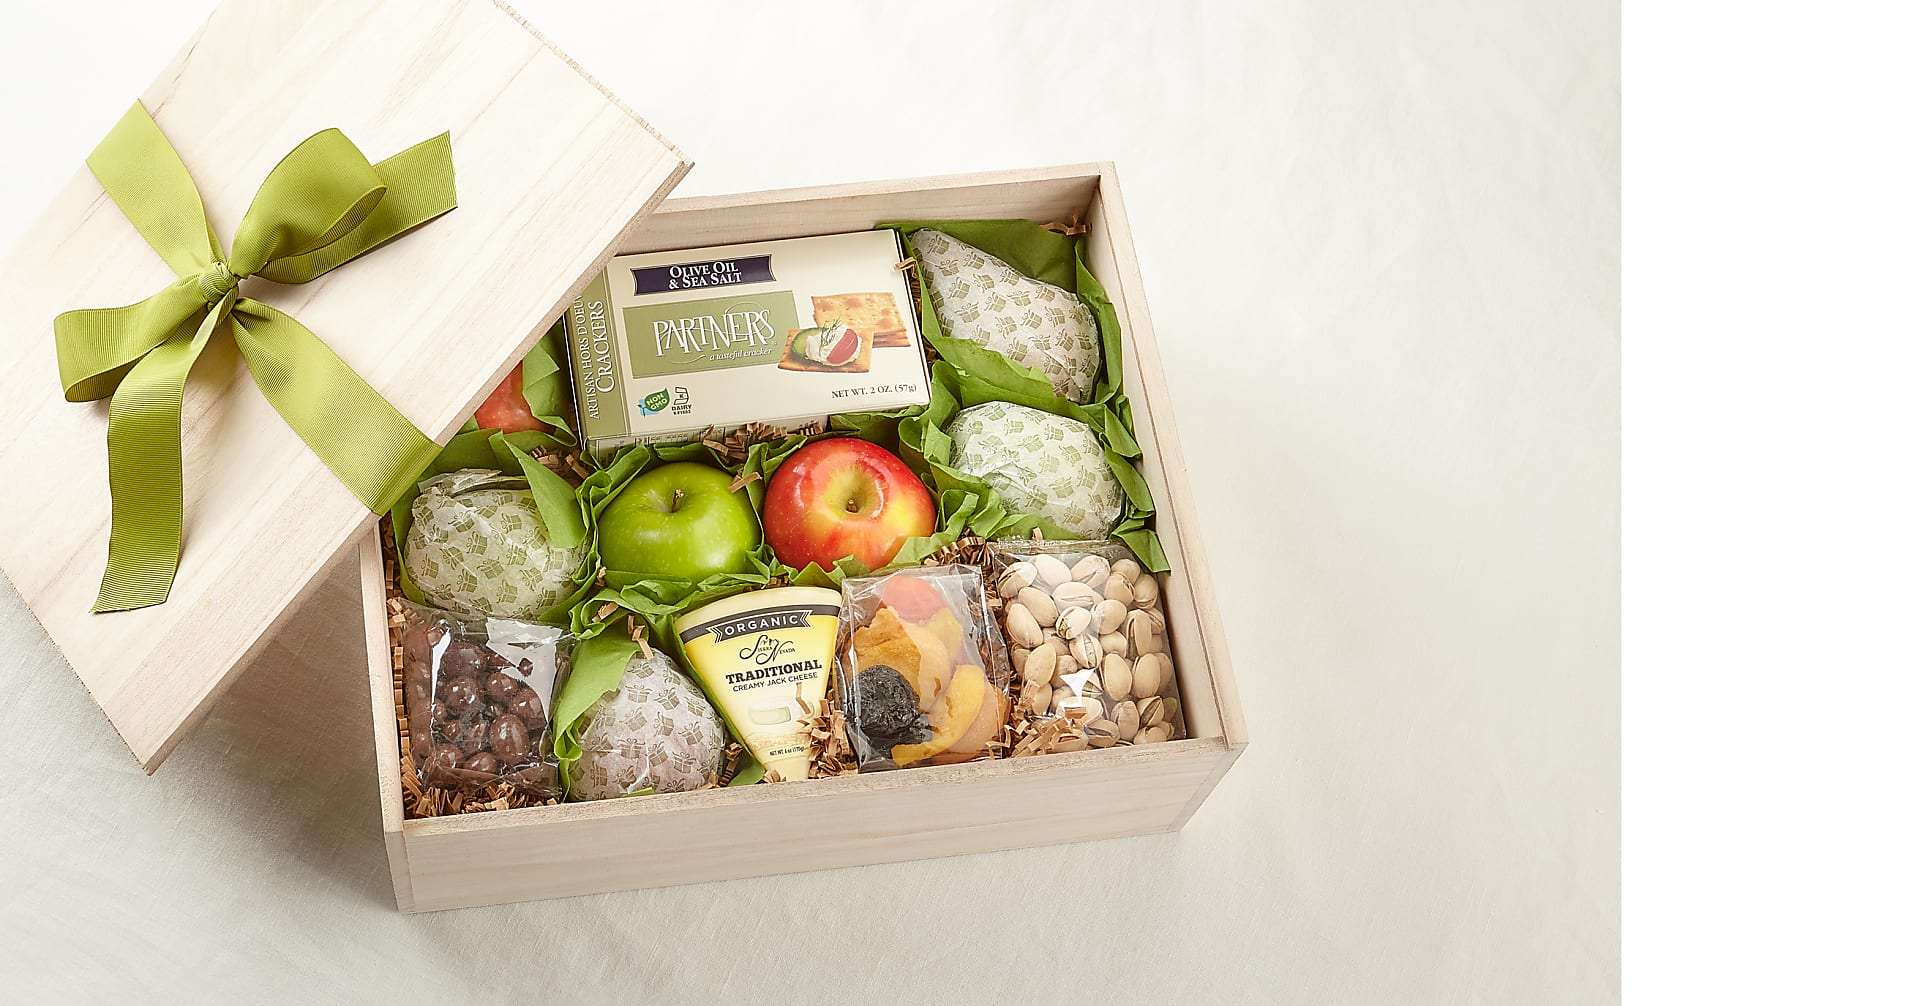 Gourmet Fruit, Cheese & Nut Gift Crate - Image 2 Of 2